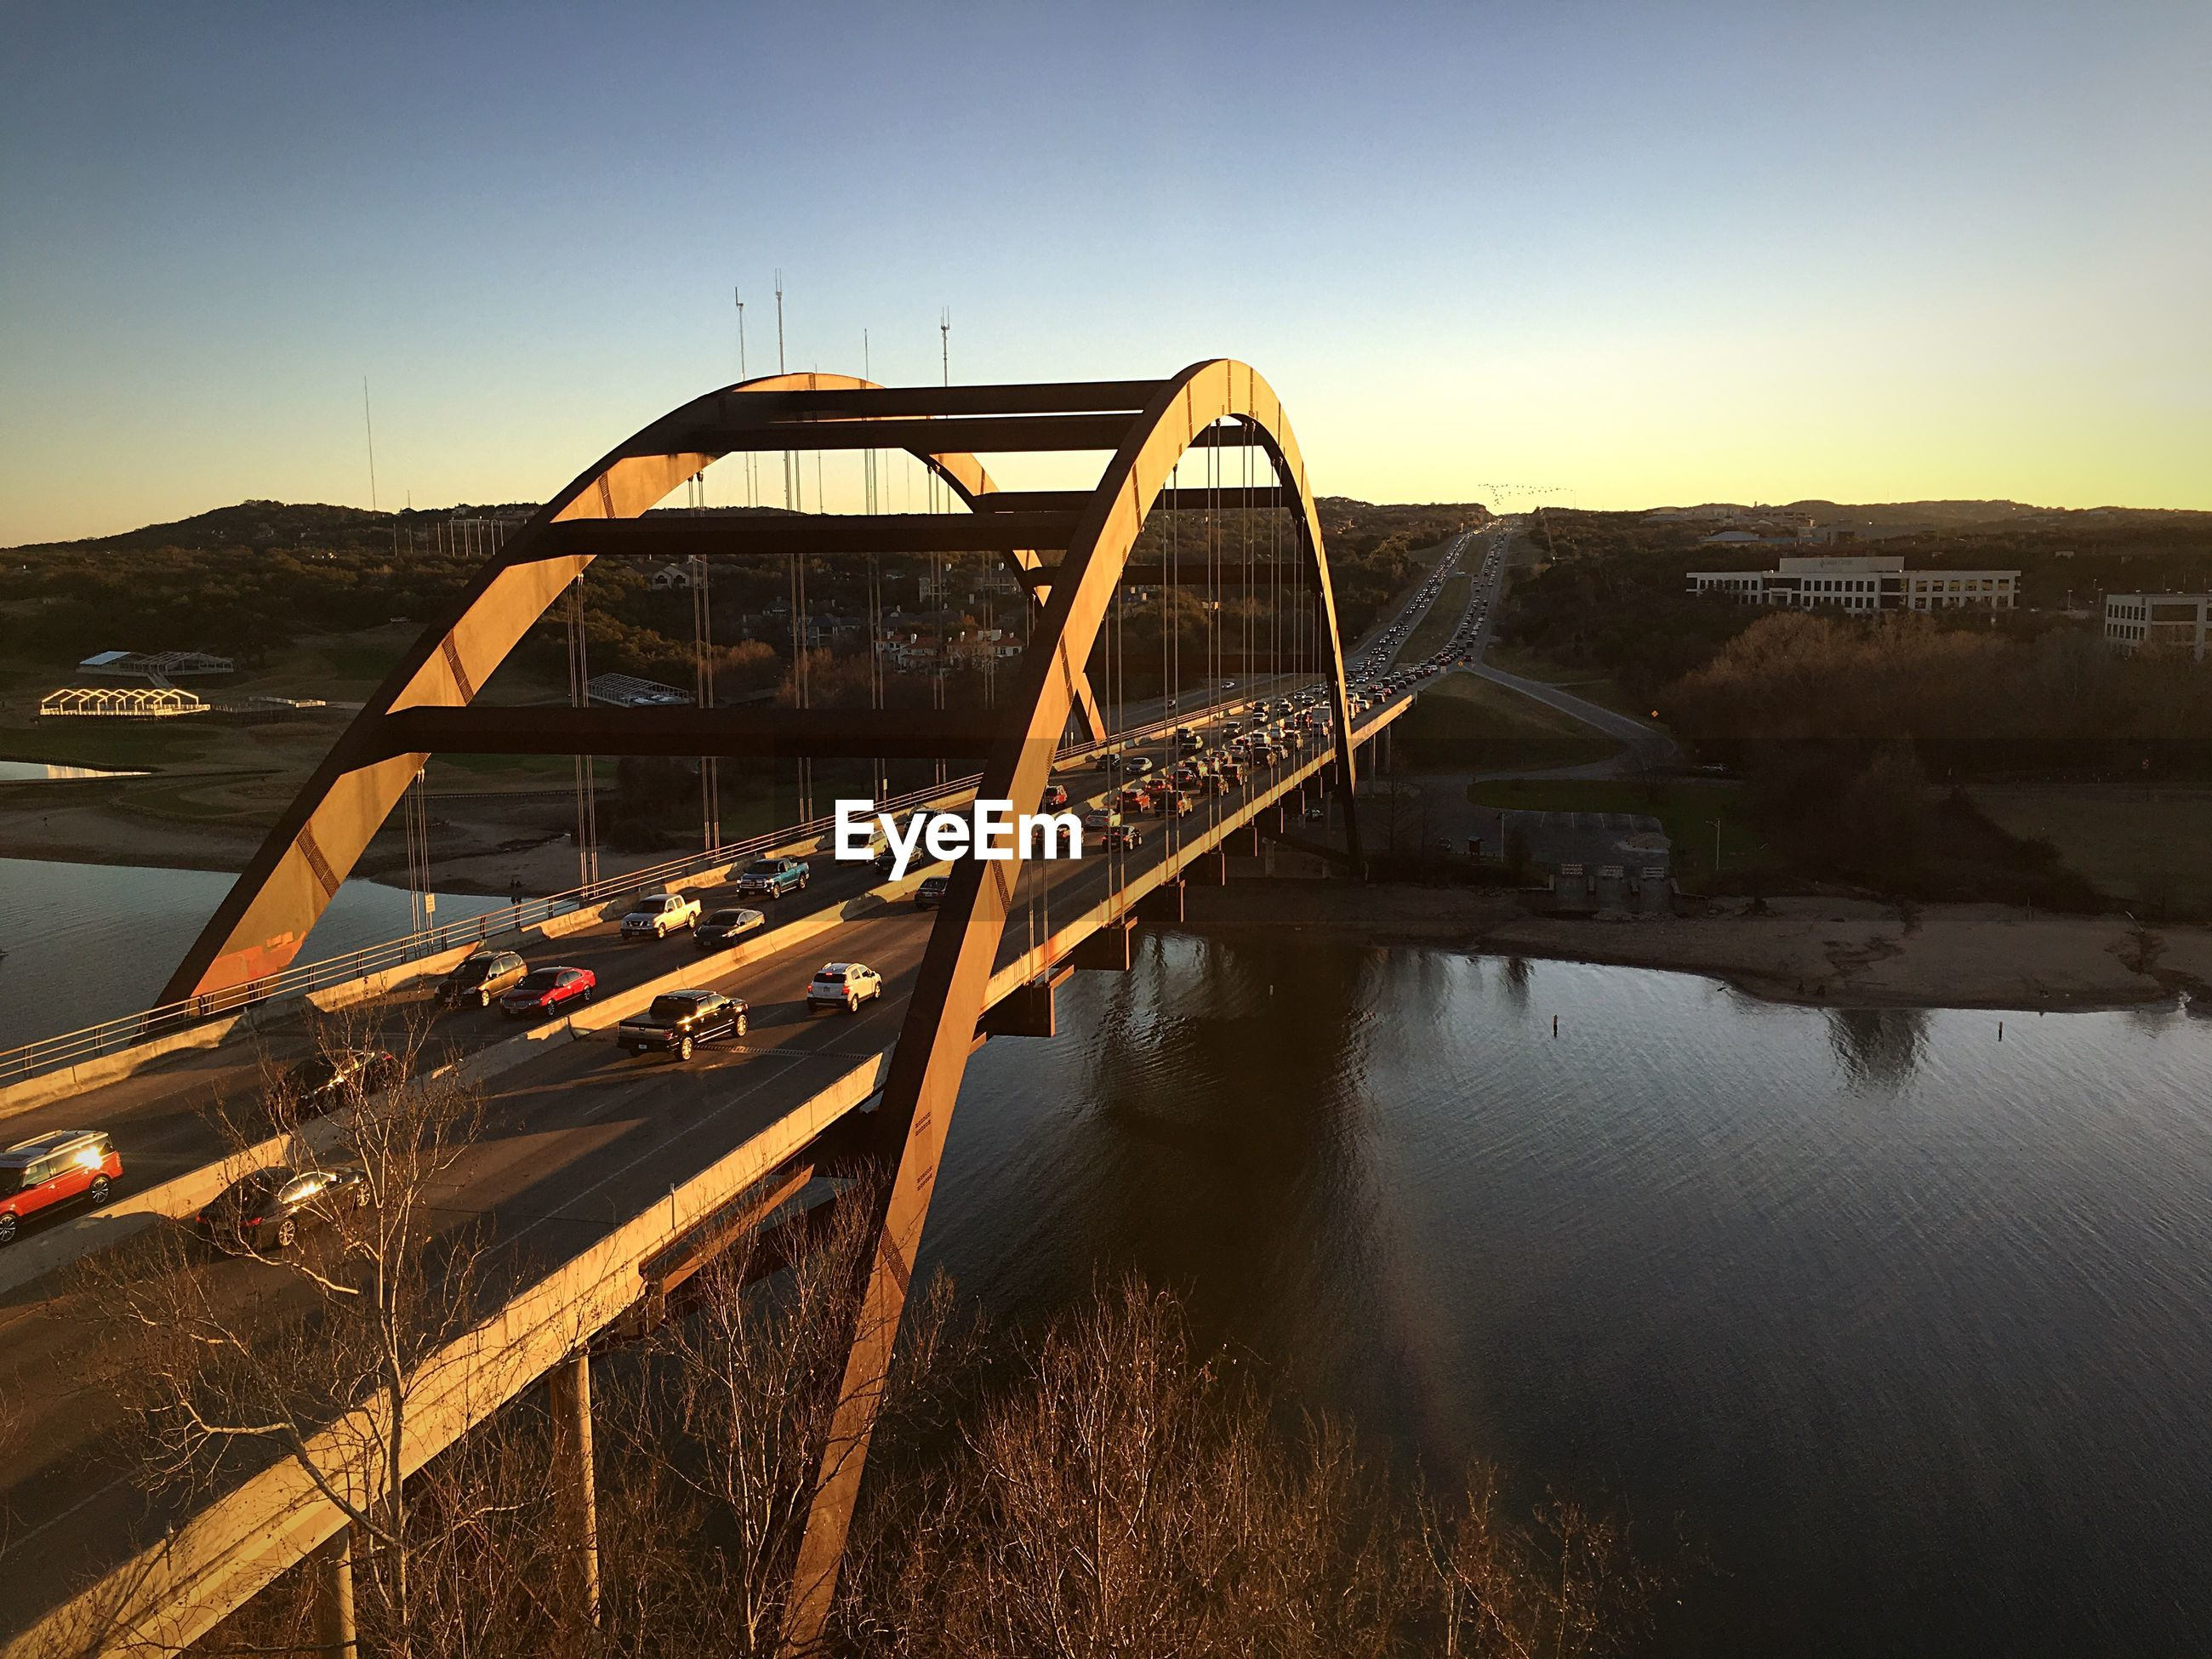 VIEW OF BRIDGE OVER RIVER AGAINST CLEAR SKY